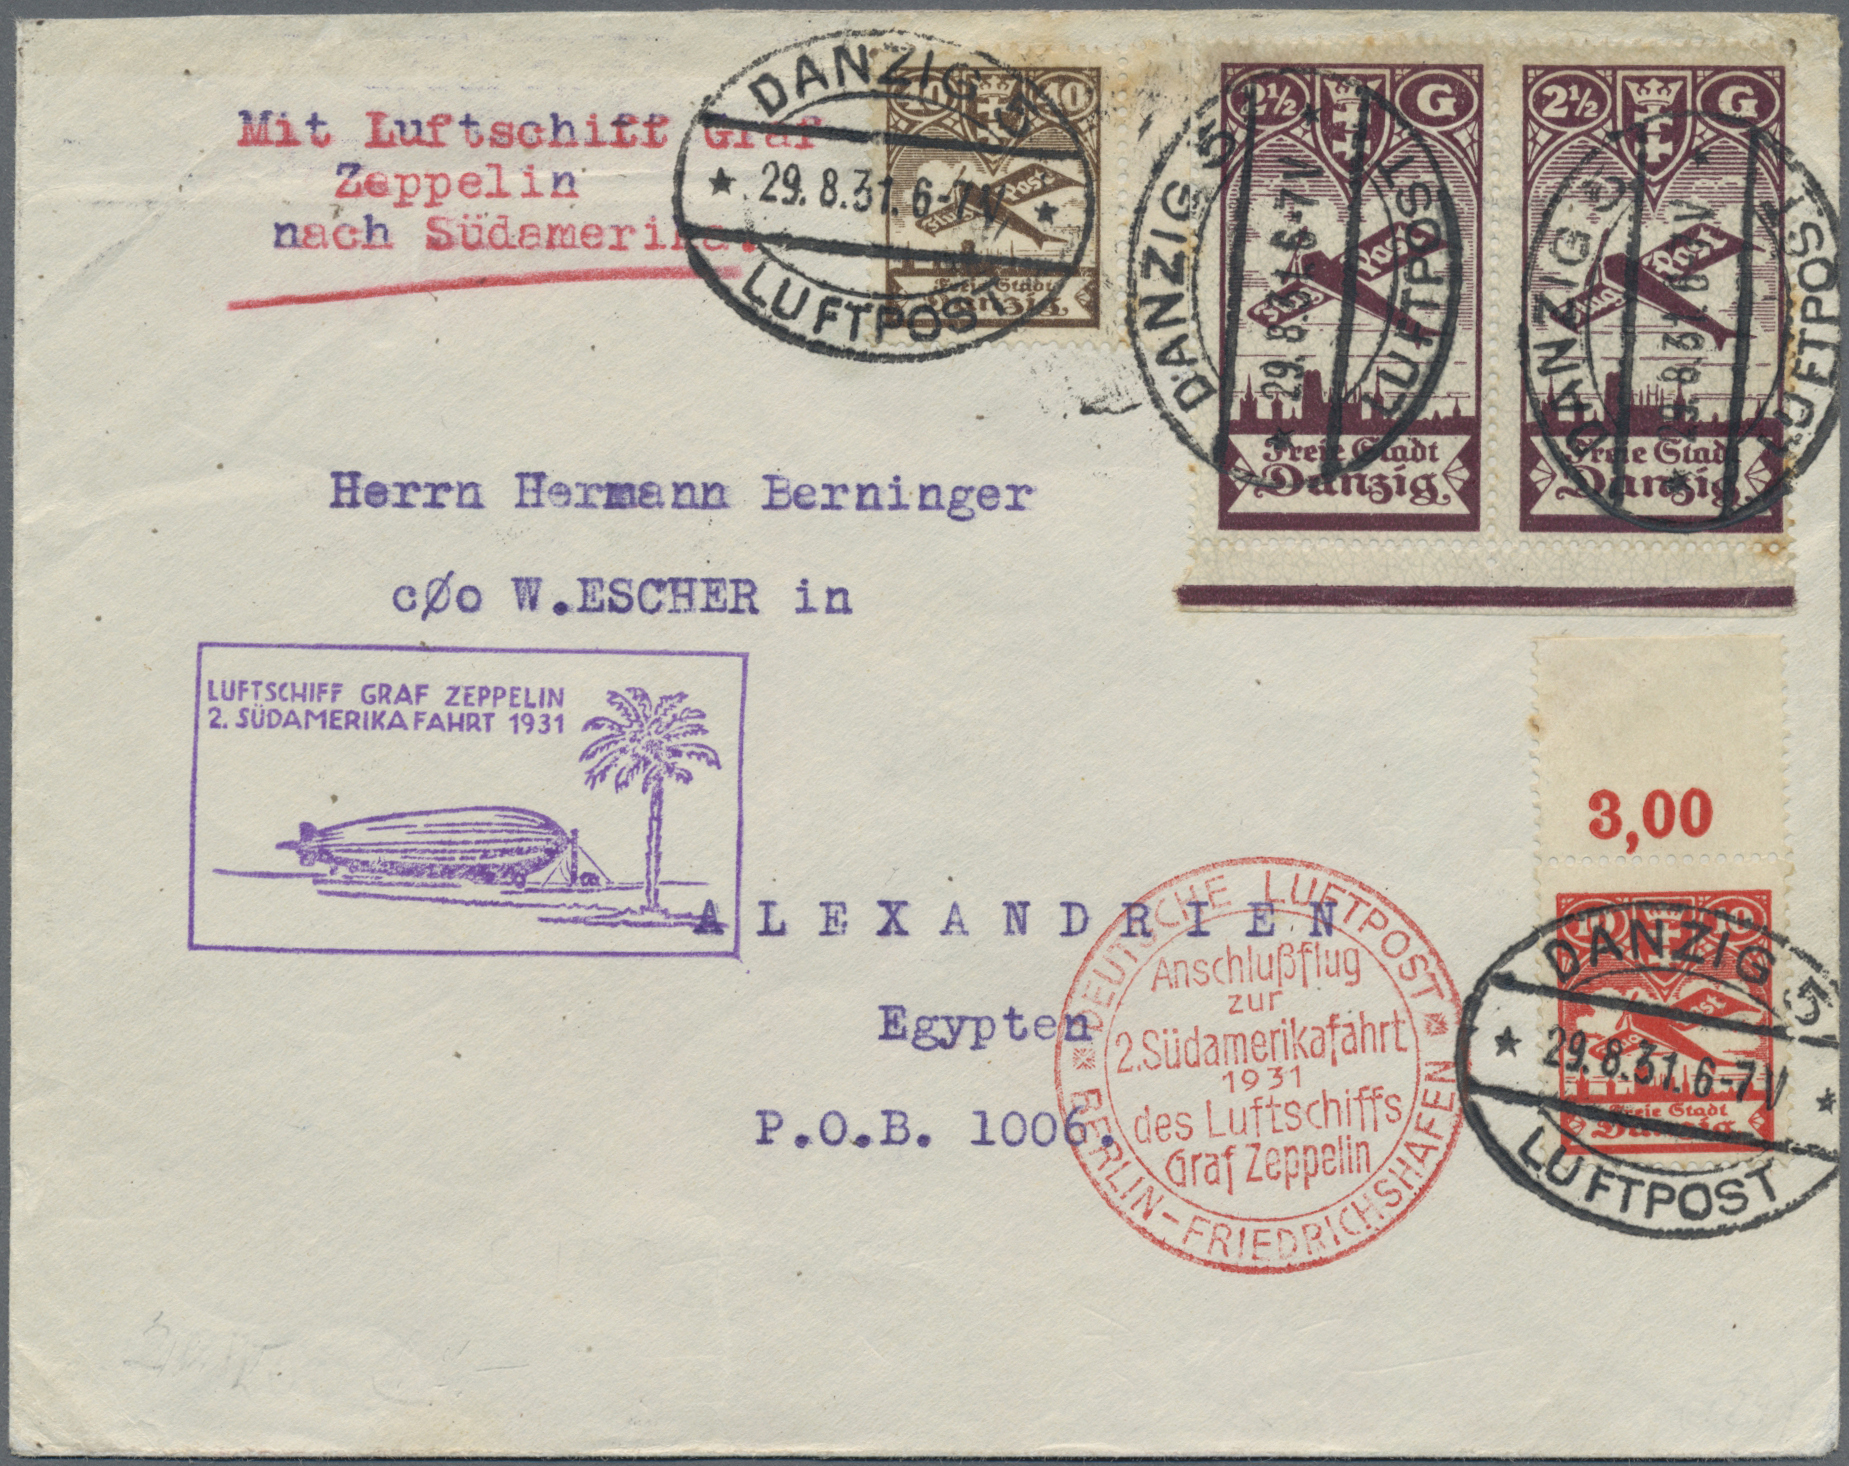 Lot 13491A - zeppelinpost deutschland  -  Auktionshaus Christoph Gärtner GmbH & Co. KG Sale #43 Asia, Overseas, Air & Ships, Mail, Spain, Day 4